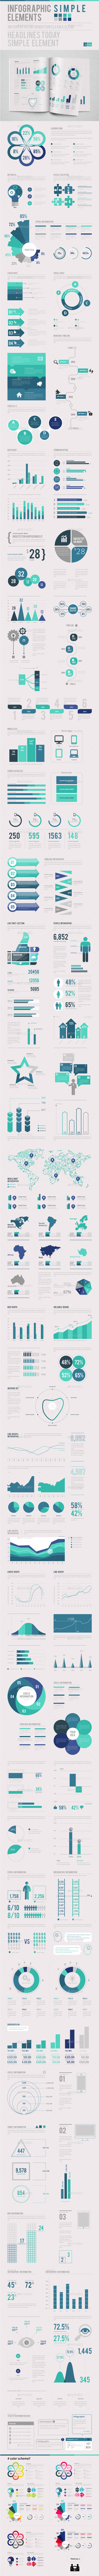 Graphicriver | Infographic Simple Free Download free download Graphicriver | Infographic Simple Free Download nulled Graphicriver | Infographic Simple Free Download